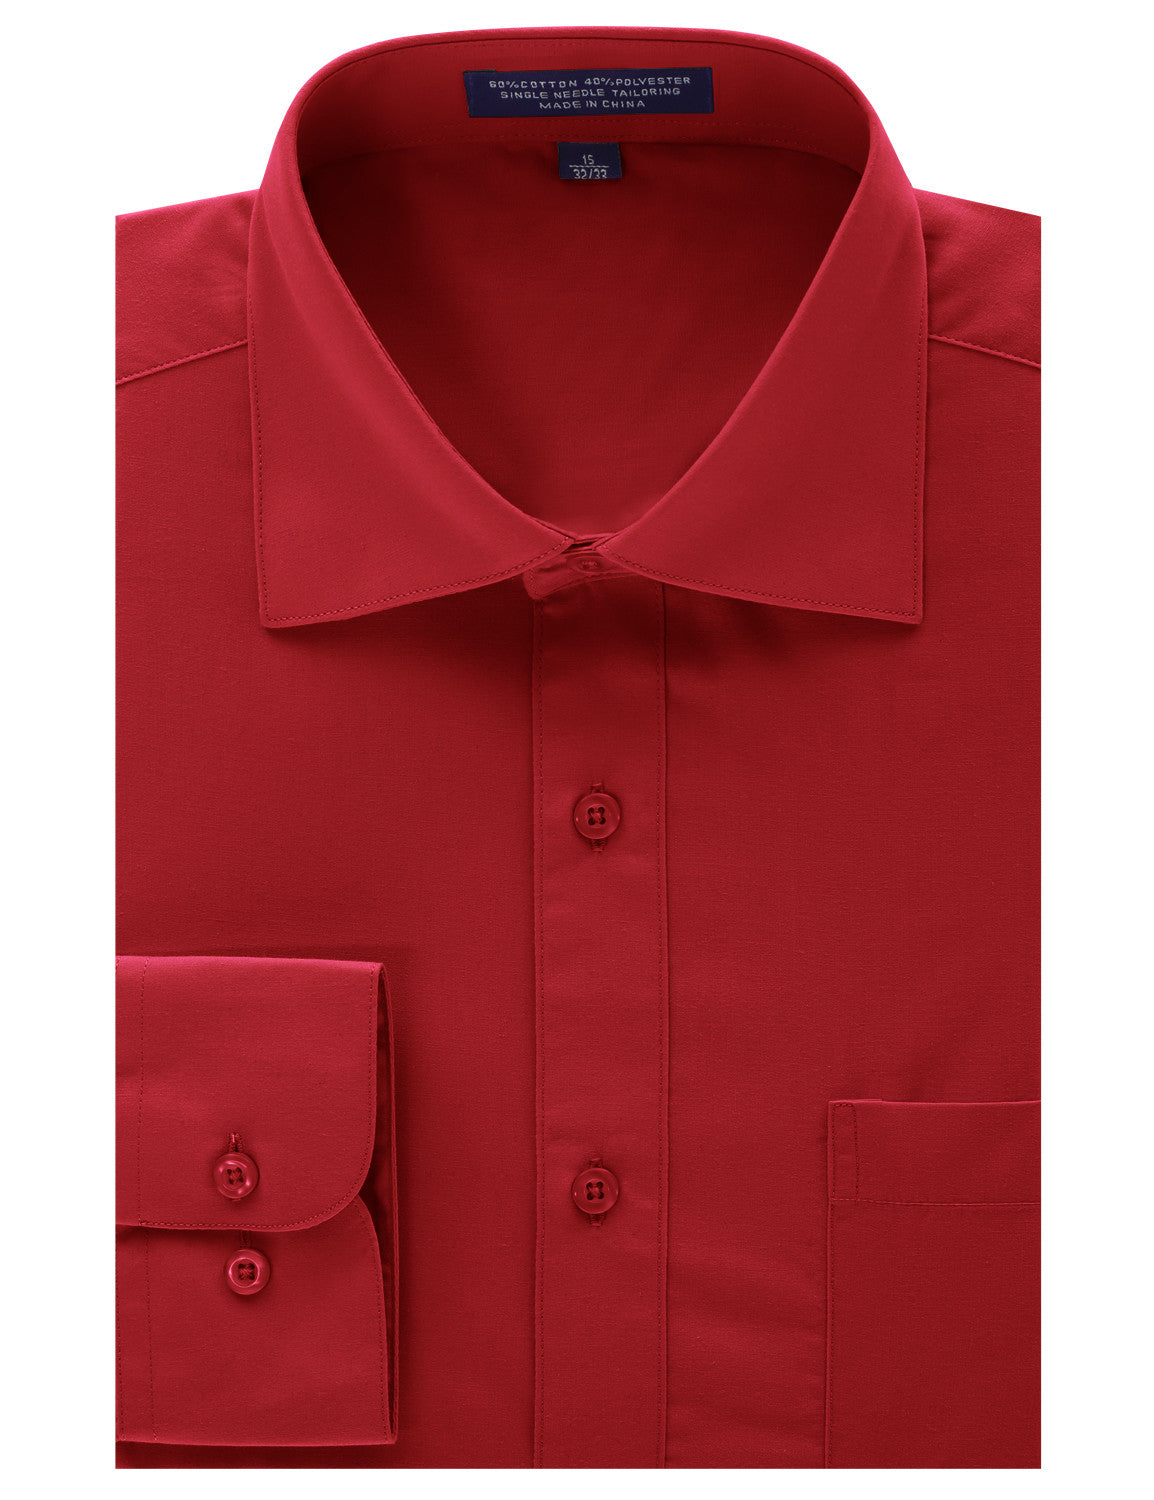 RED Regular Fit Dress Shirt w/ Reversible Cuff (Big & Tall Available)- MONDAYSUIT